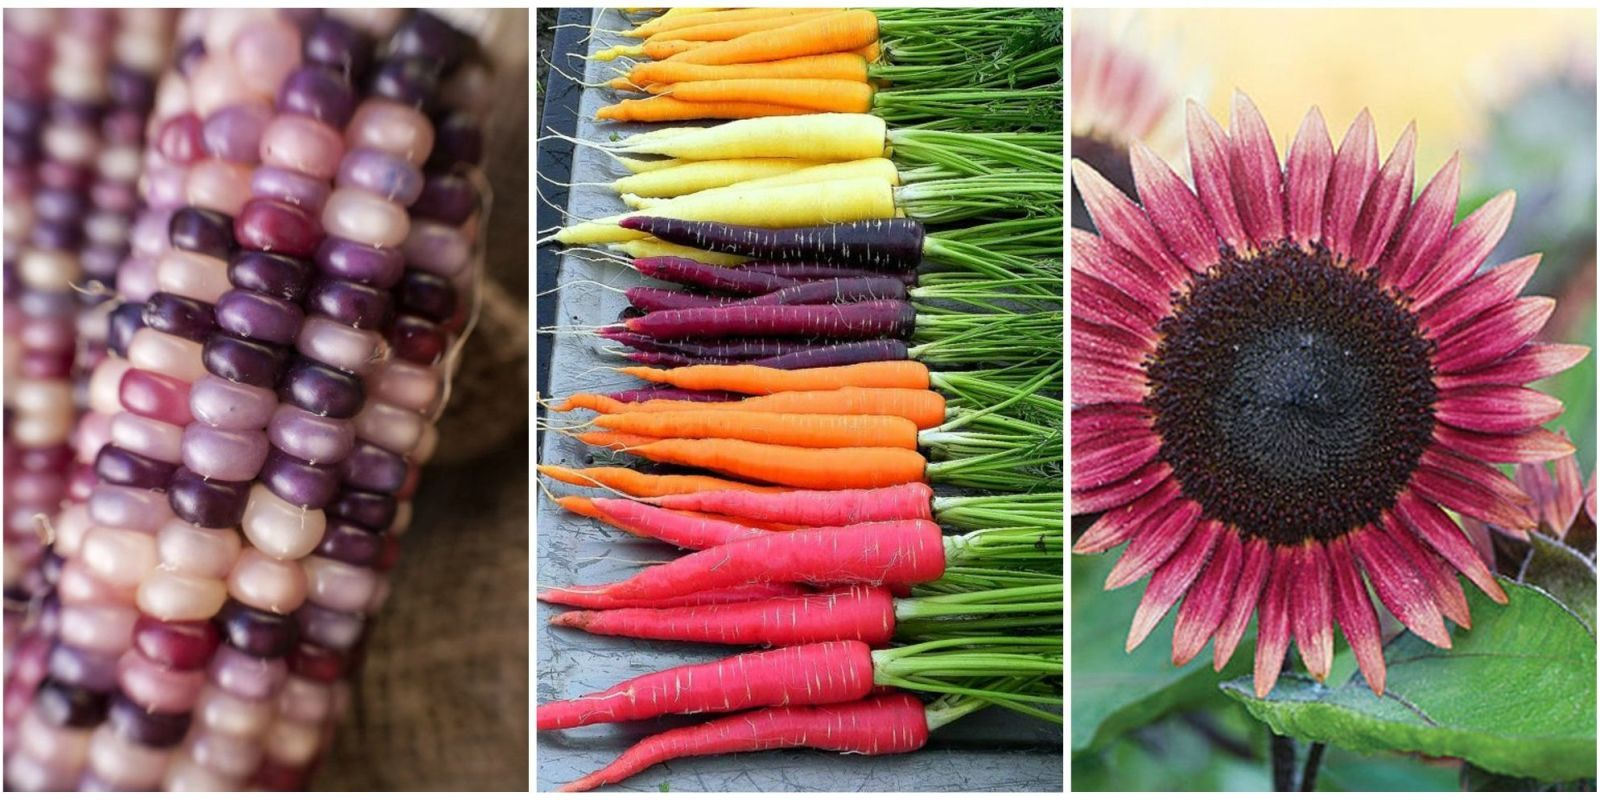 13 Unique Seeds You Should Plant In Your Garden With Images